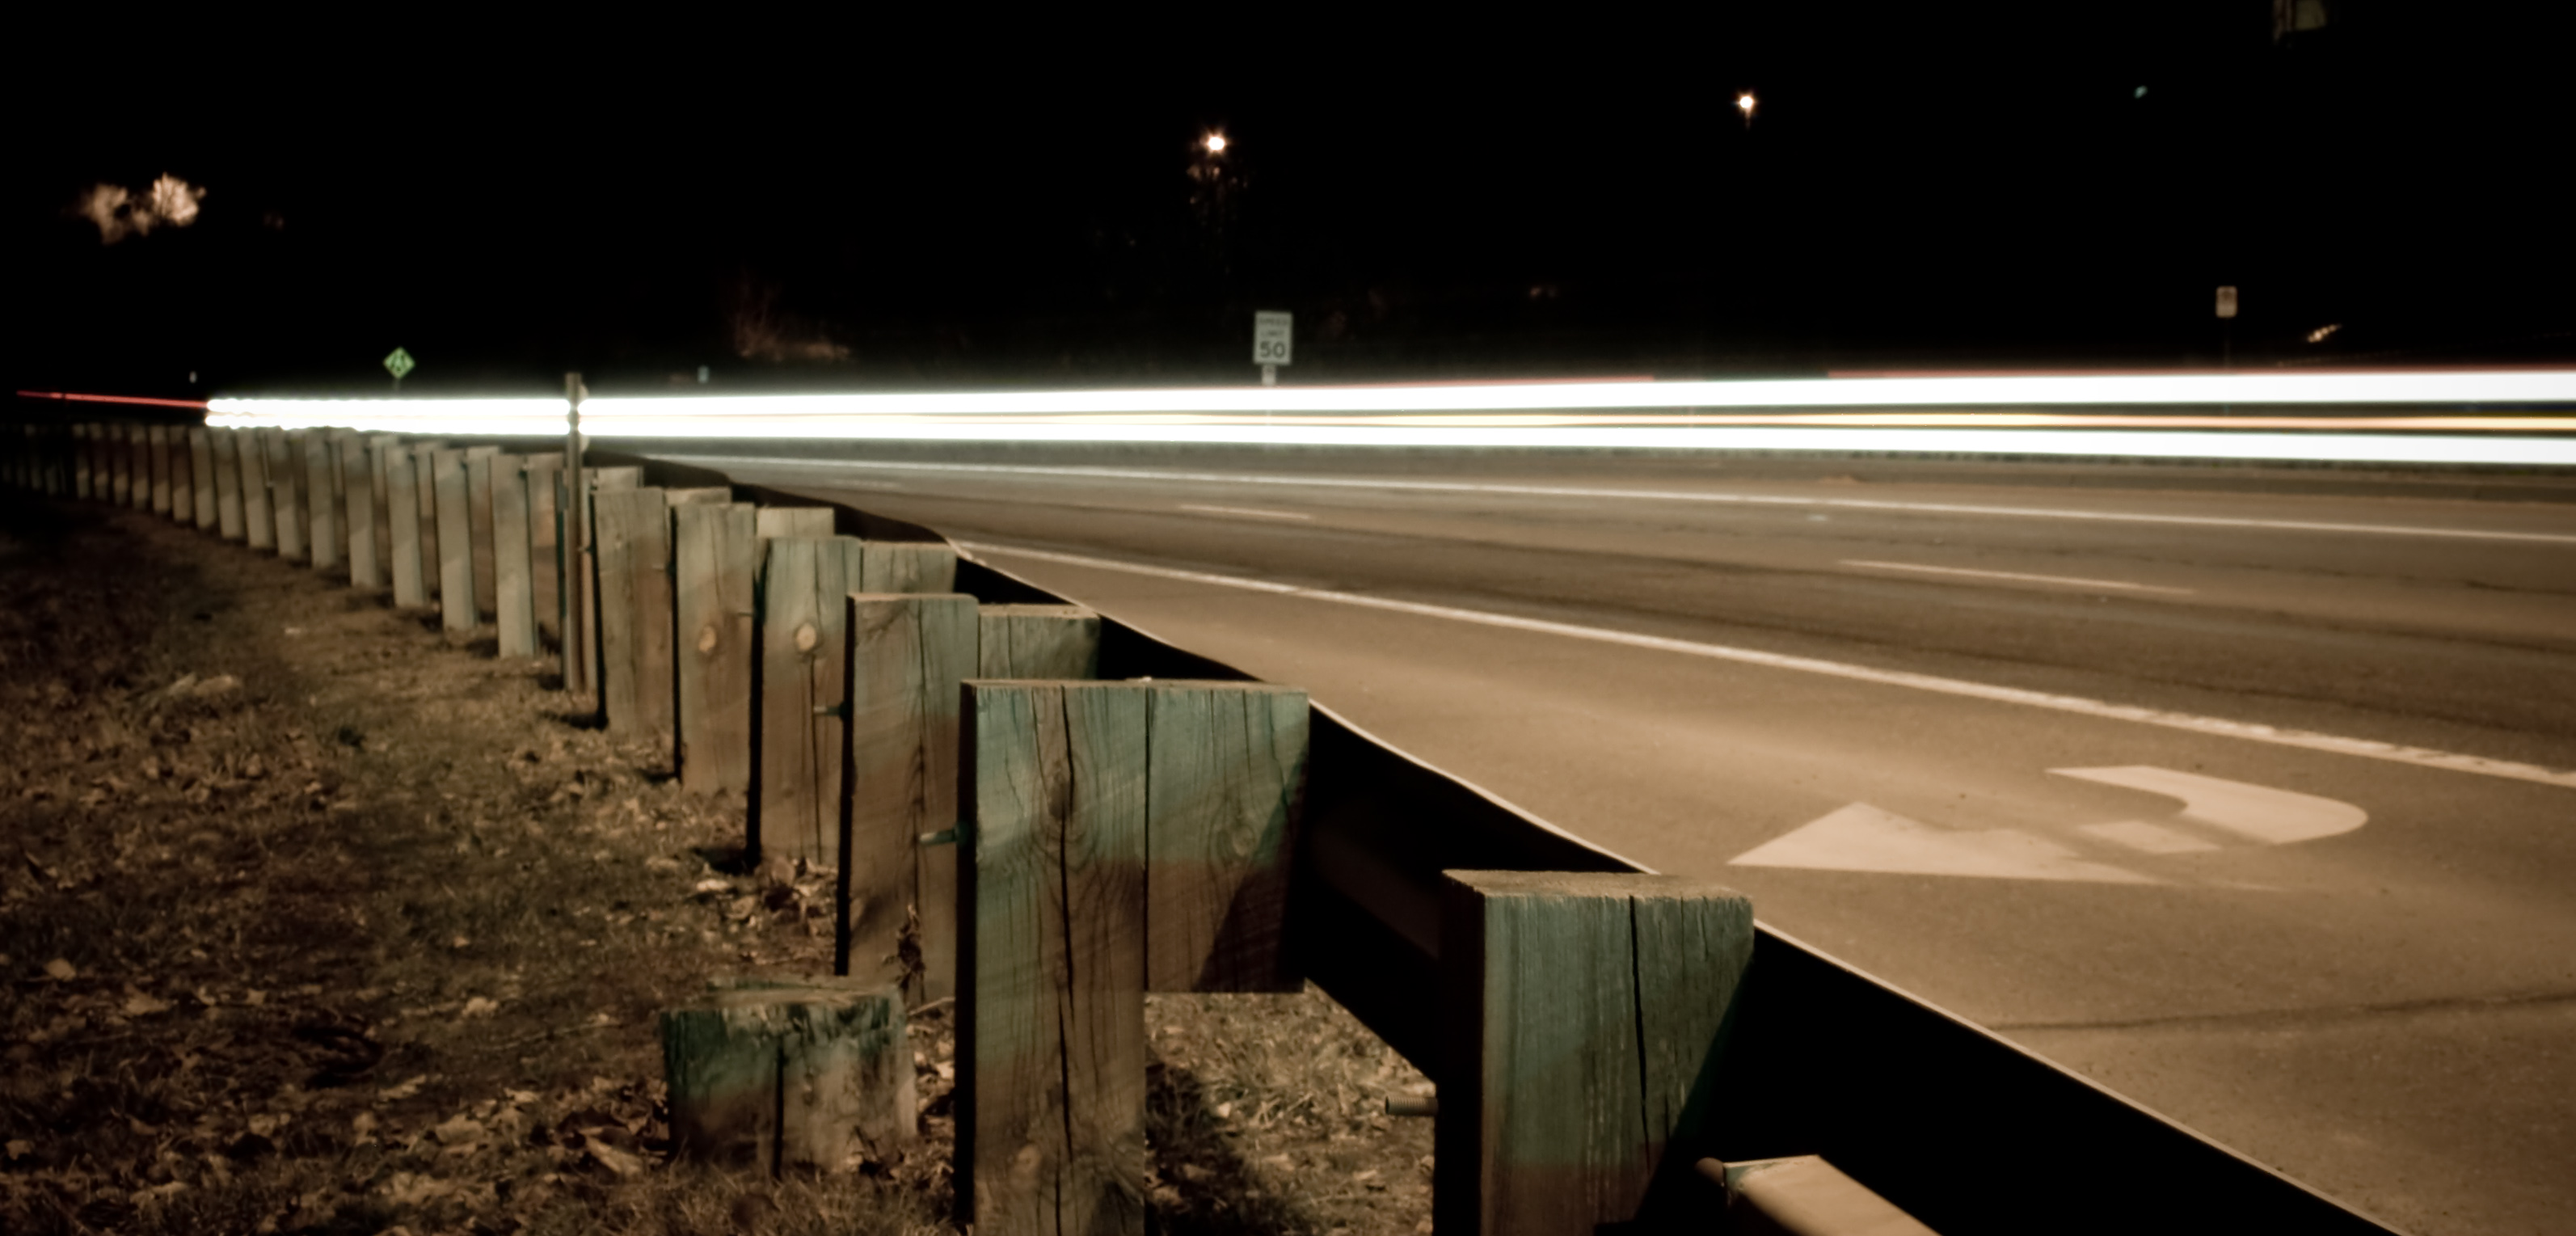 Highway exposure, Automobile, Night, Transportation, Street, HQ Photo